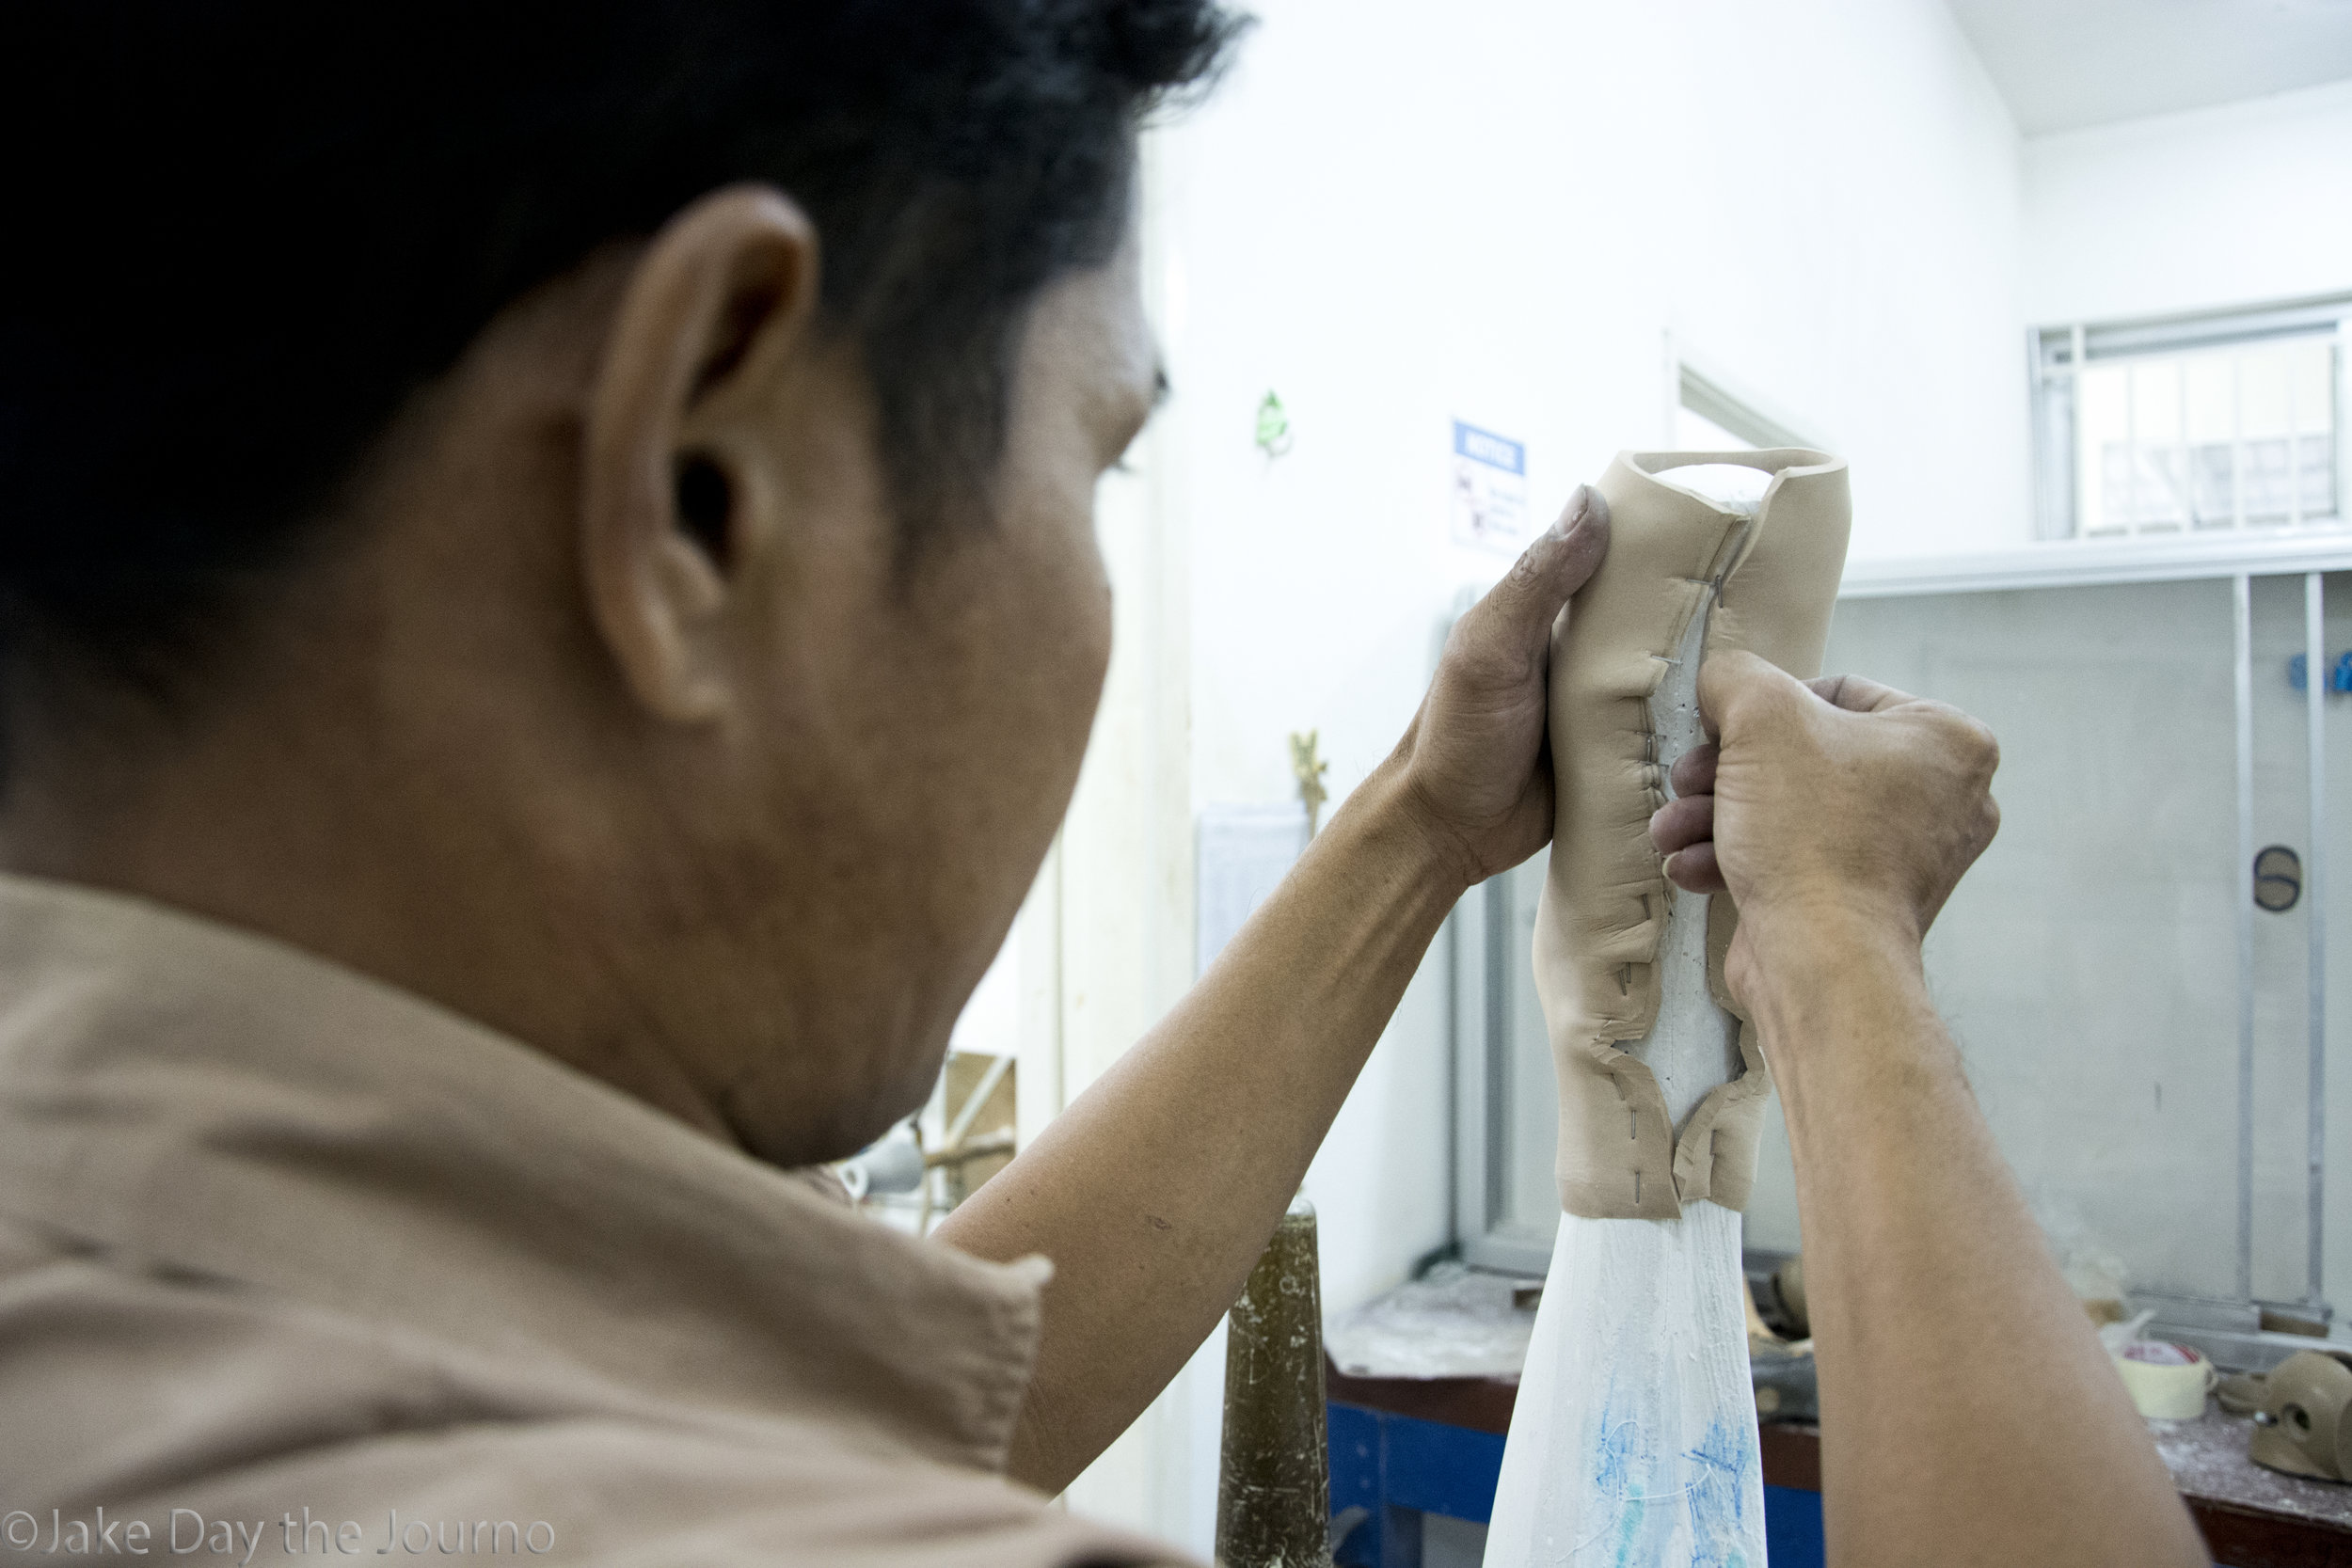 A staff member staples plaster to a mould at the Exceed Cambodian School of Prosthetics and Orthotics on 15/01/18 by Jake Day. The School of Prosthetics and Orthotics run a clinic that provides prosthetics and orthotics for Cambodians with physical disabilities.